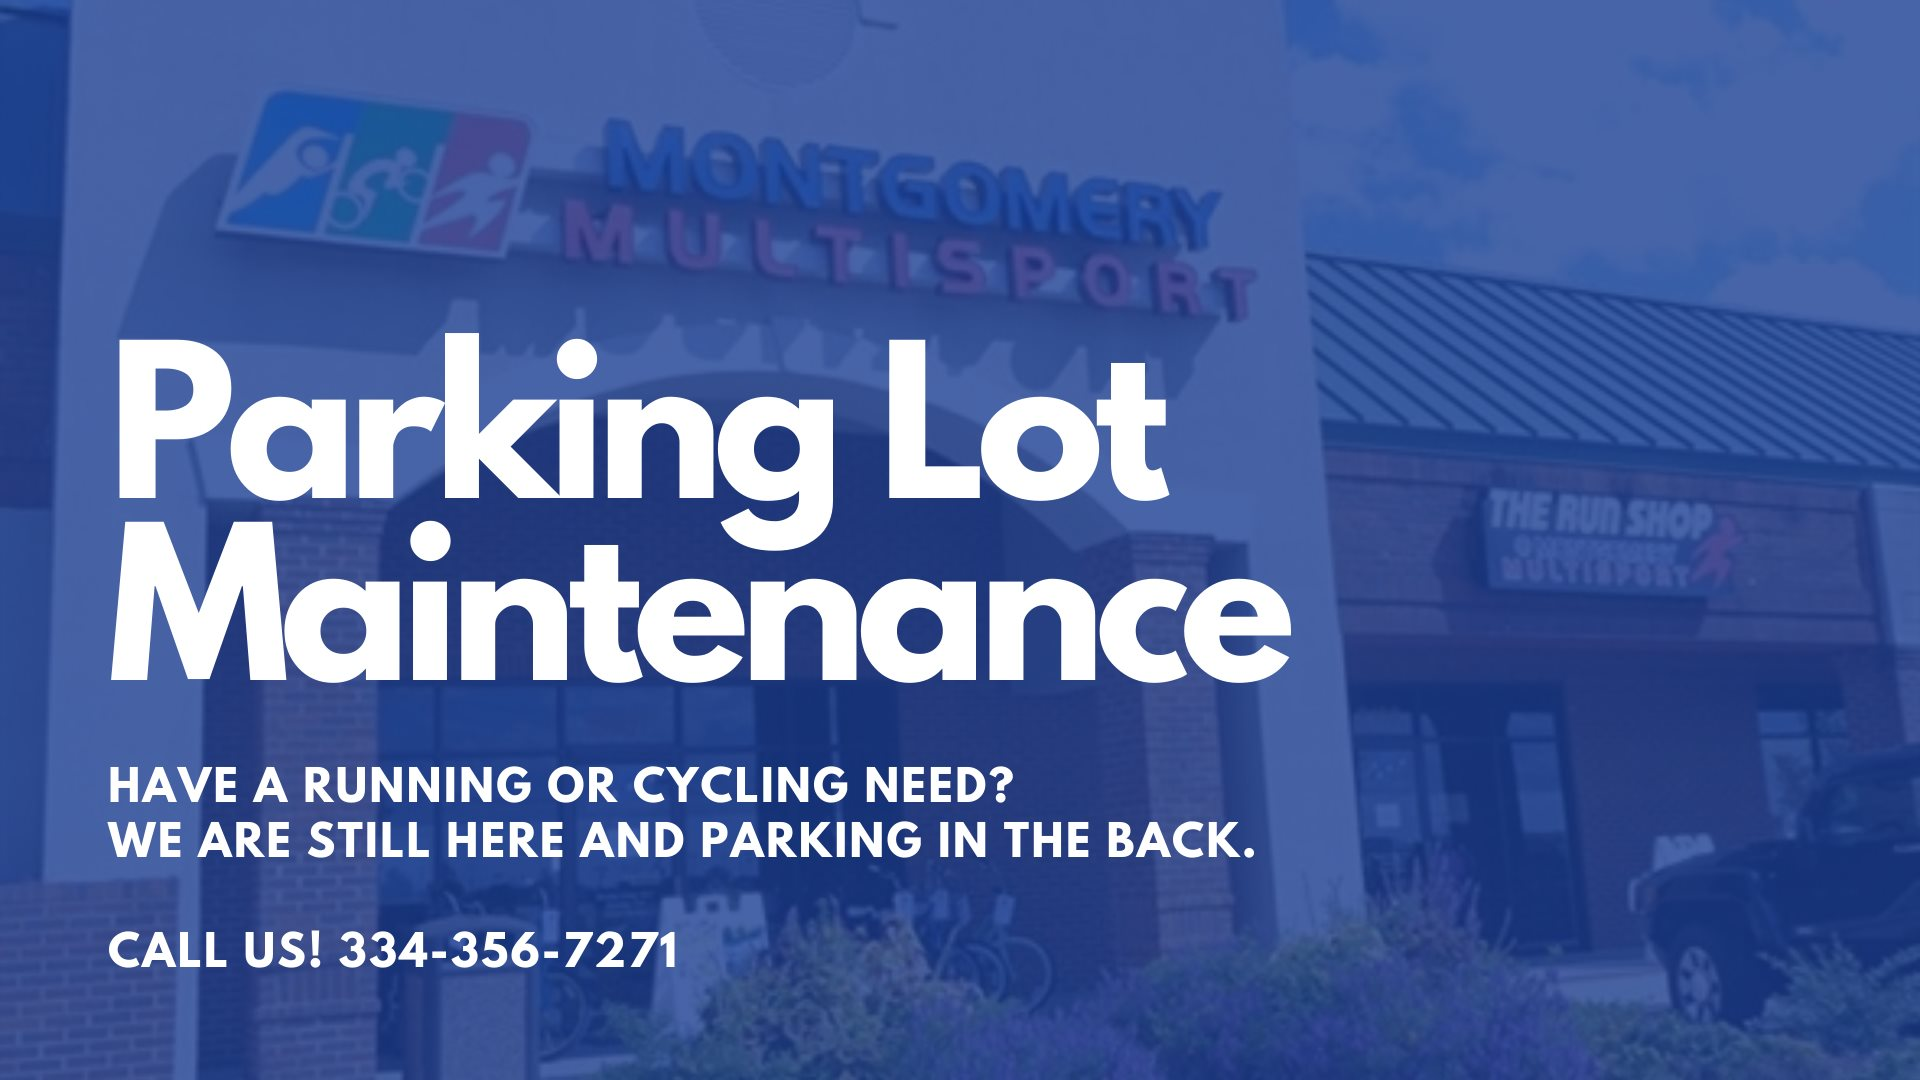 Don't let the empty parking lot fool you! We are parking in the back while our lot gets new pavement. Knock on the door or better yet give us a call and let us know you are coming! 334-356-7271